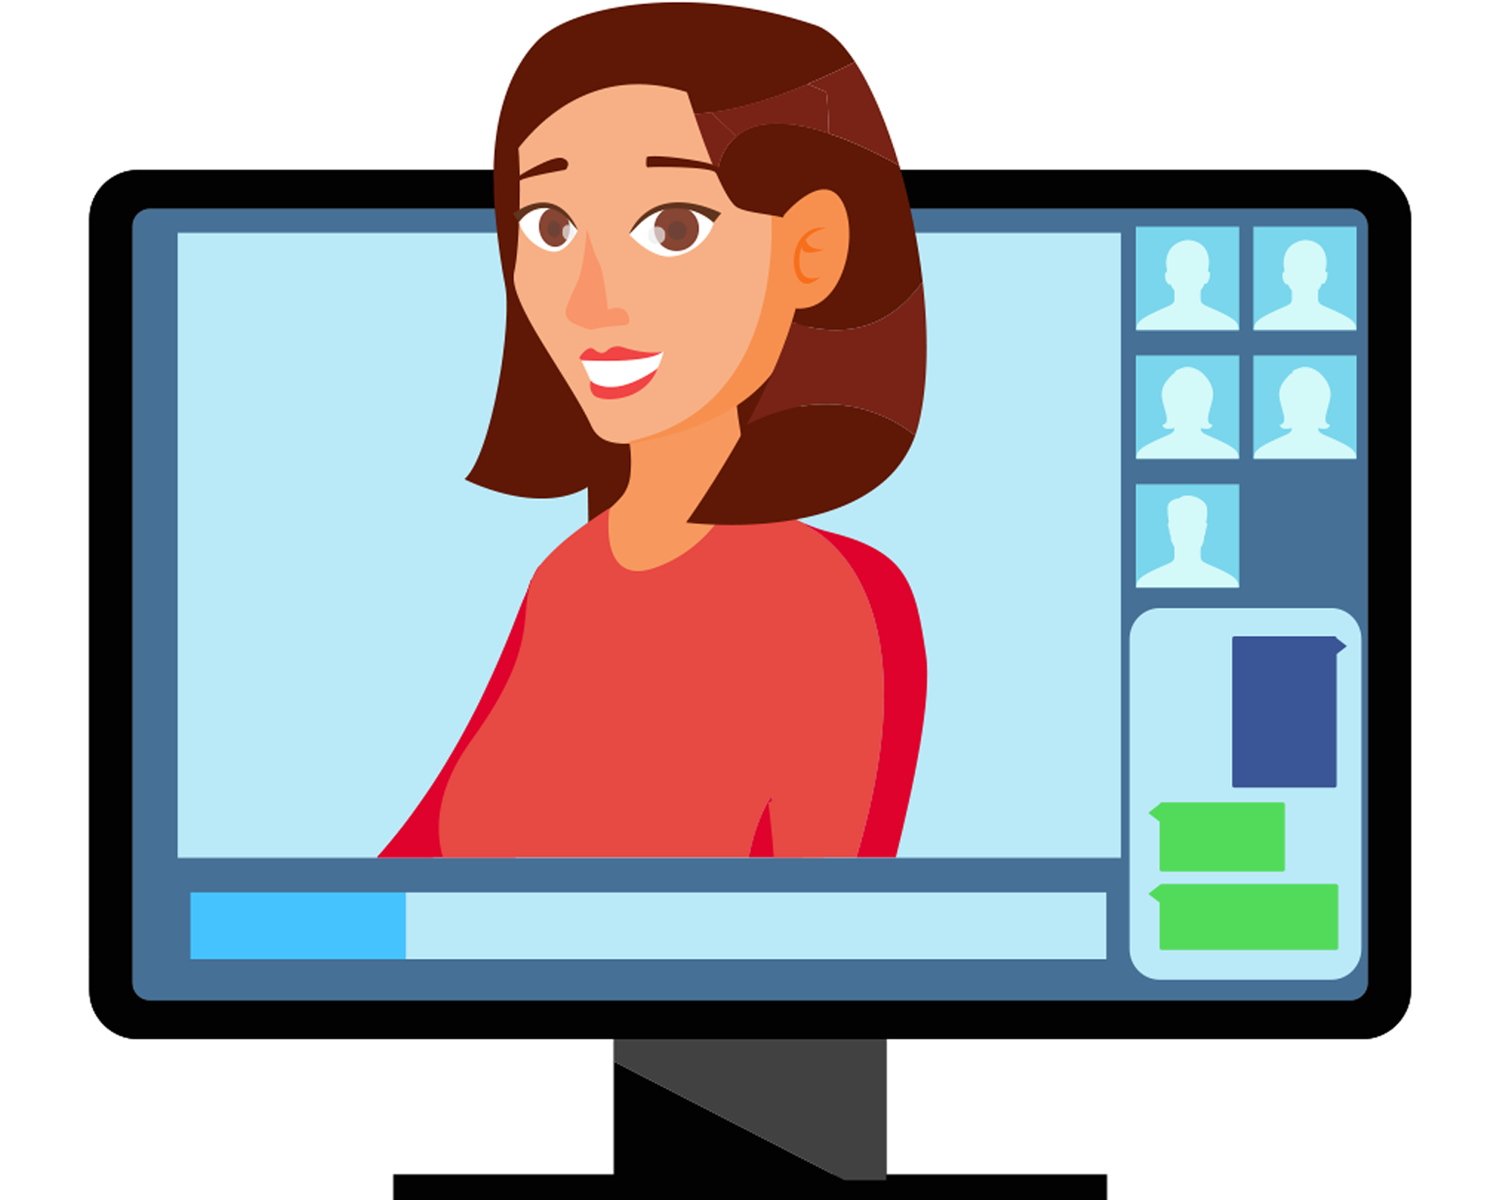 avatar representing a virtual librarian ready to answer your questions virtually.